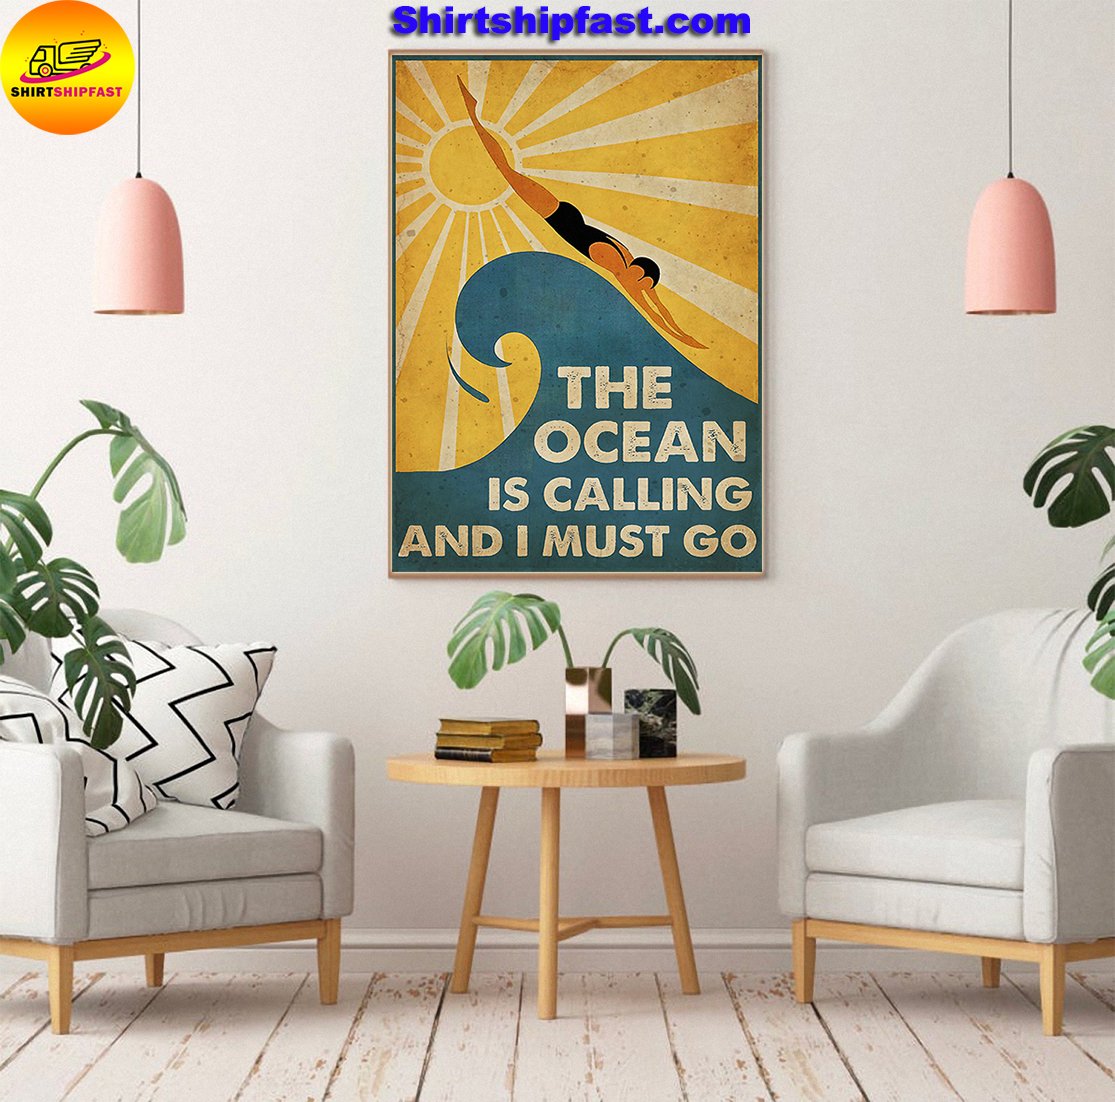 Swimming The ocean is calling and I must go poster - Picture 3